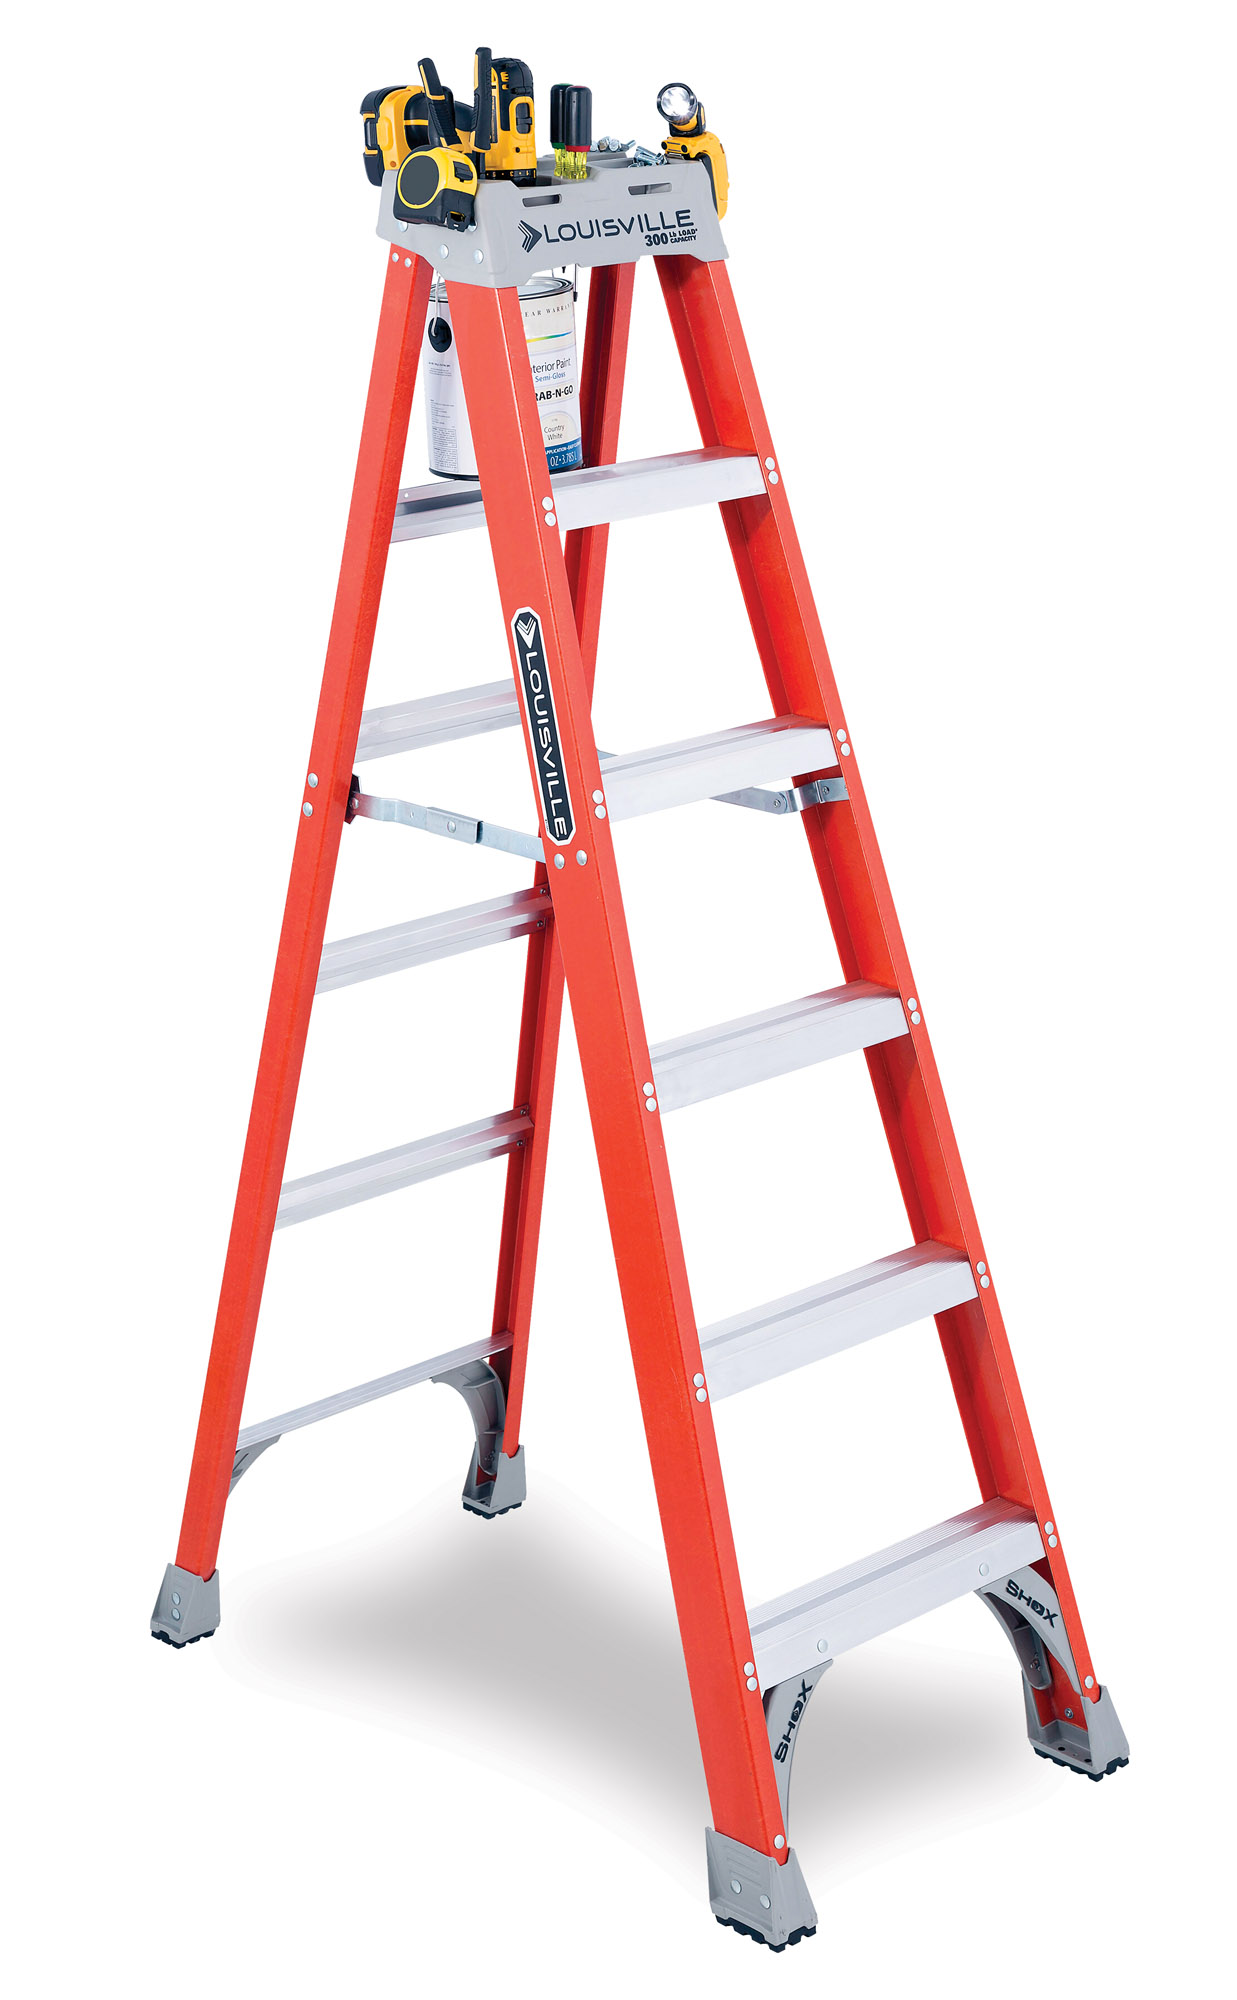 A sturdy 6' step ladder enables you to safely reach and work on surfaces up to ceiling height in most houses, even old ones. The FS1506 fiberglass ladder includes a molded top with slots for tools and also holds a paint tray. Louisville Ladder, (800) 666-2811, louisvilleladder.com